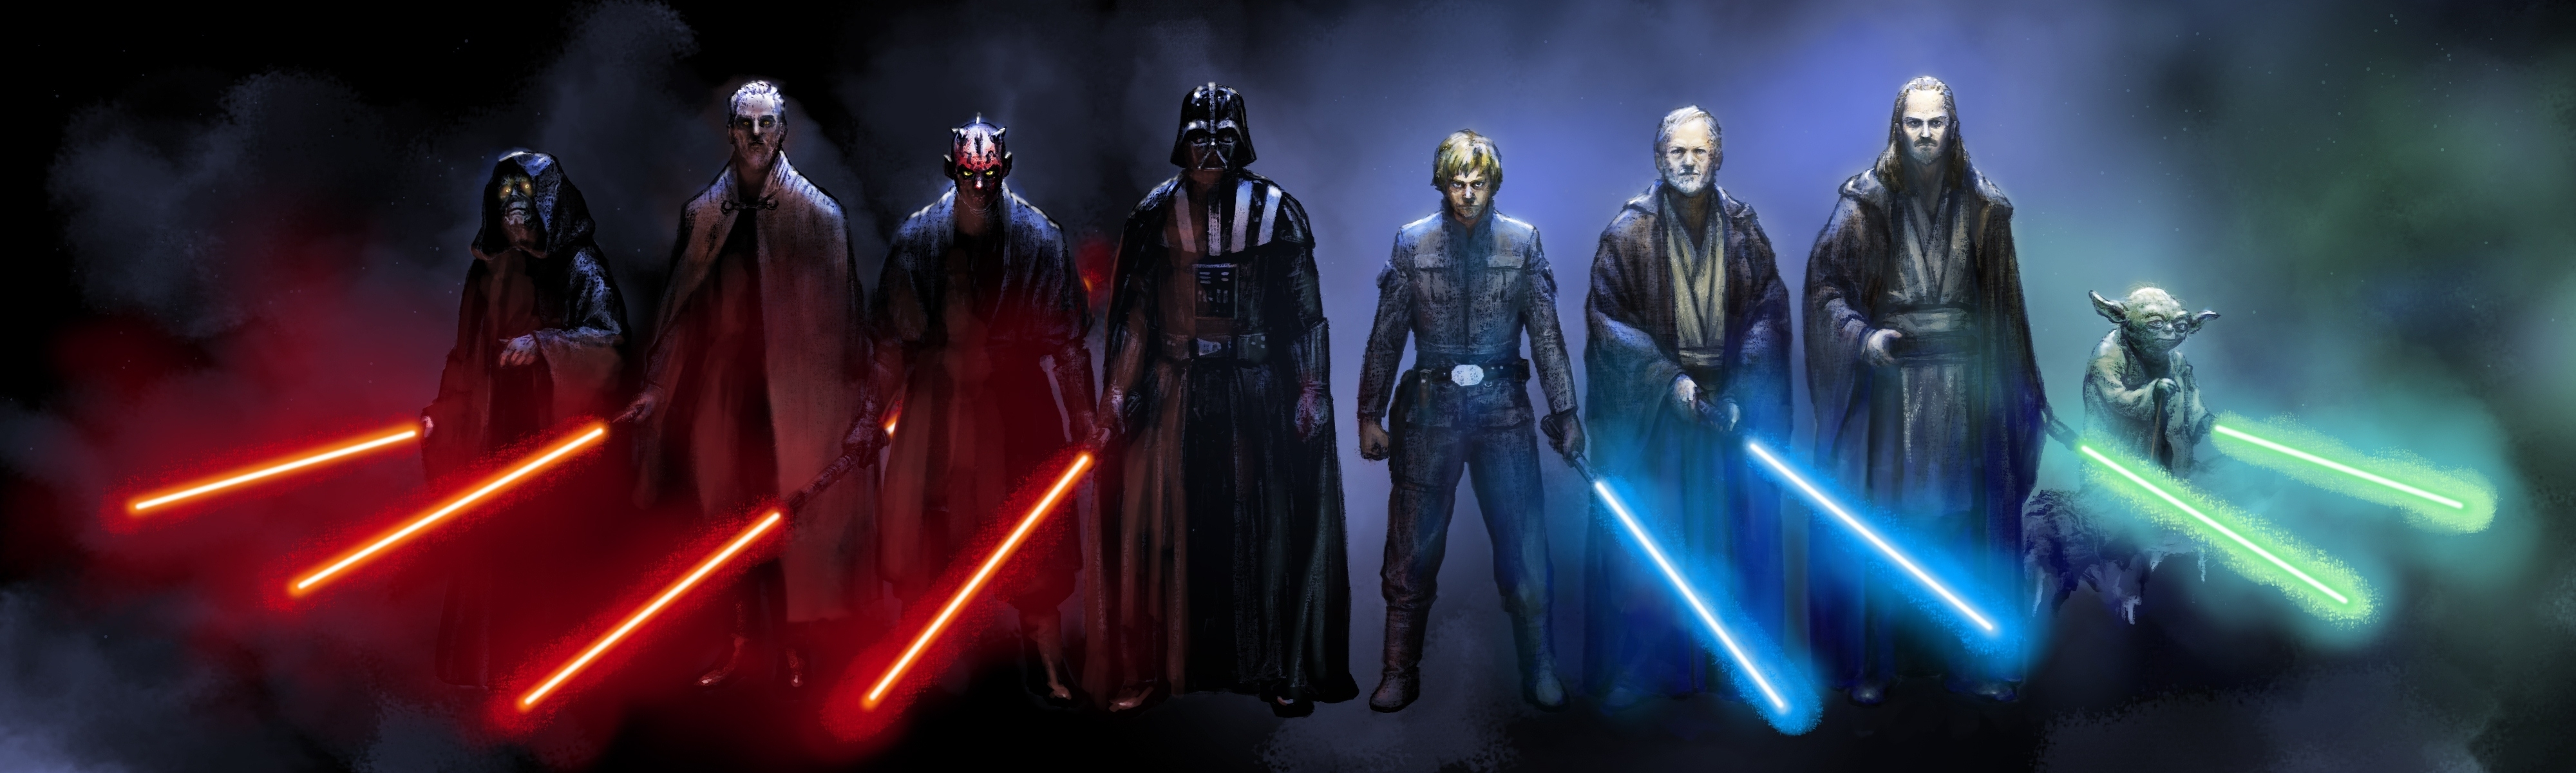 jedi vs sith wallpaper | 4000x1200 | id:22786 - wallpapervortex